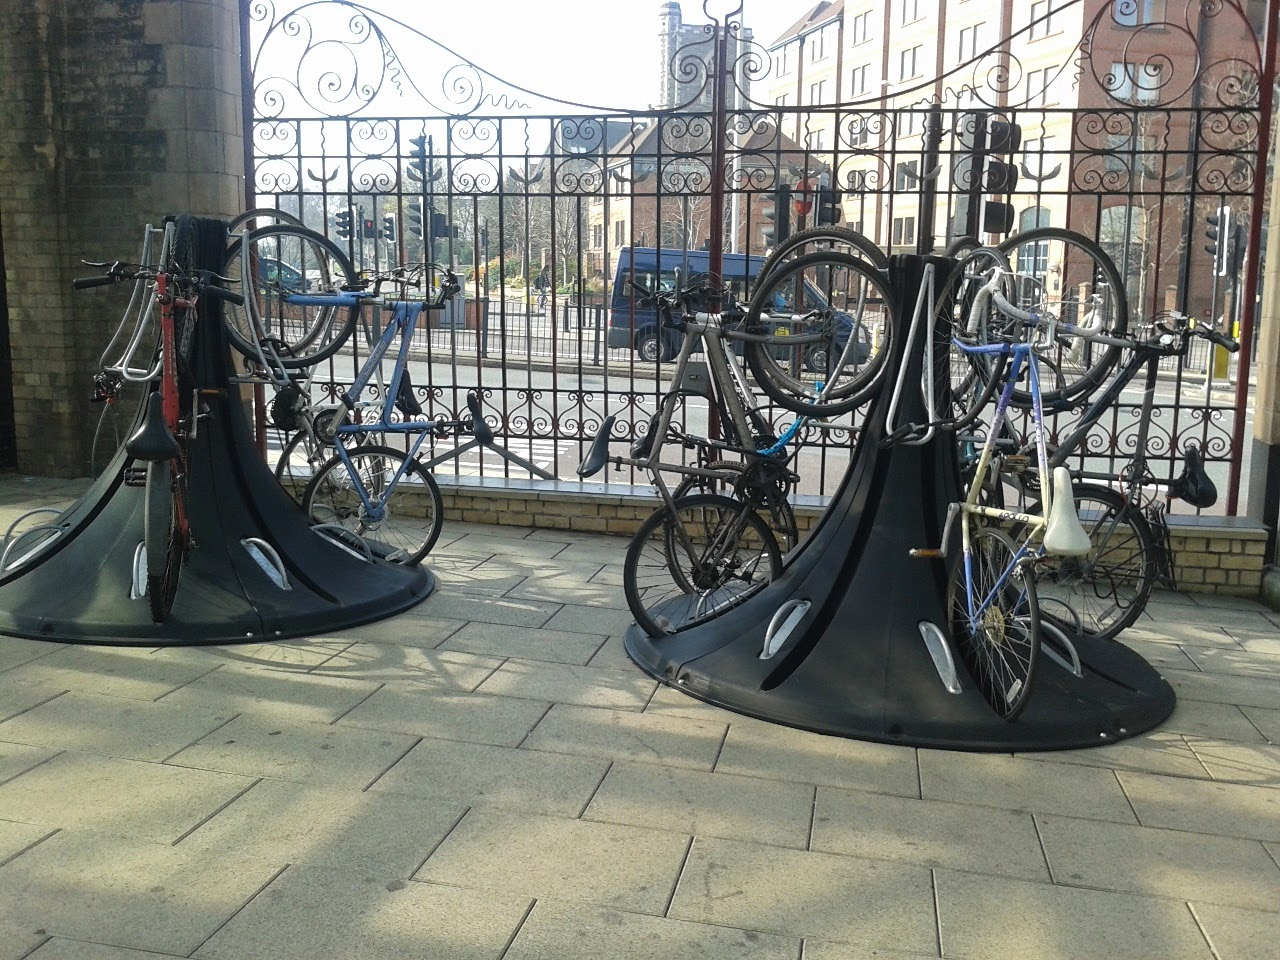 Cycle parking, Leicester